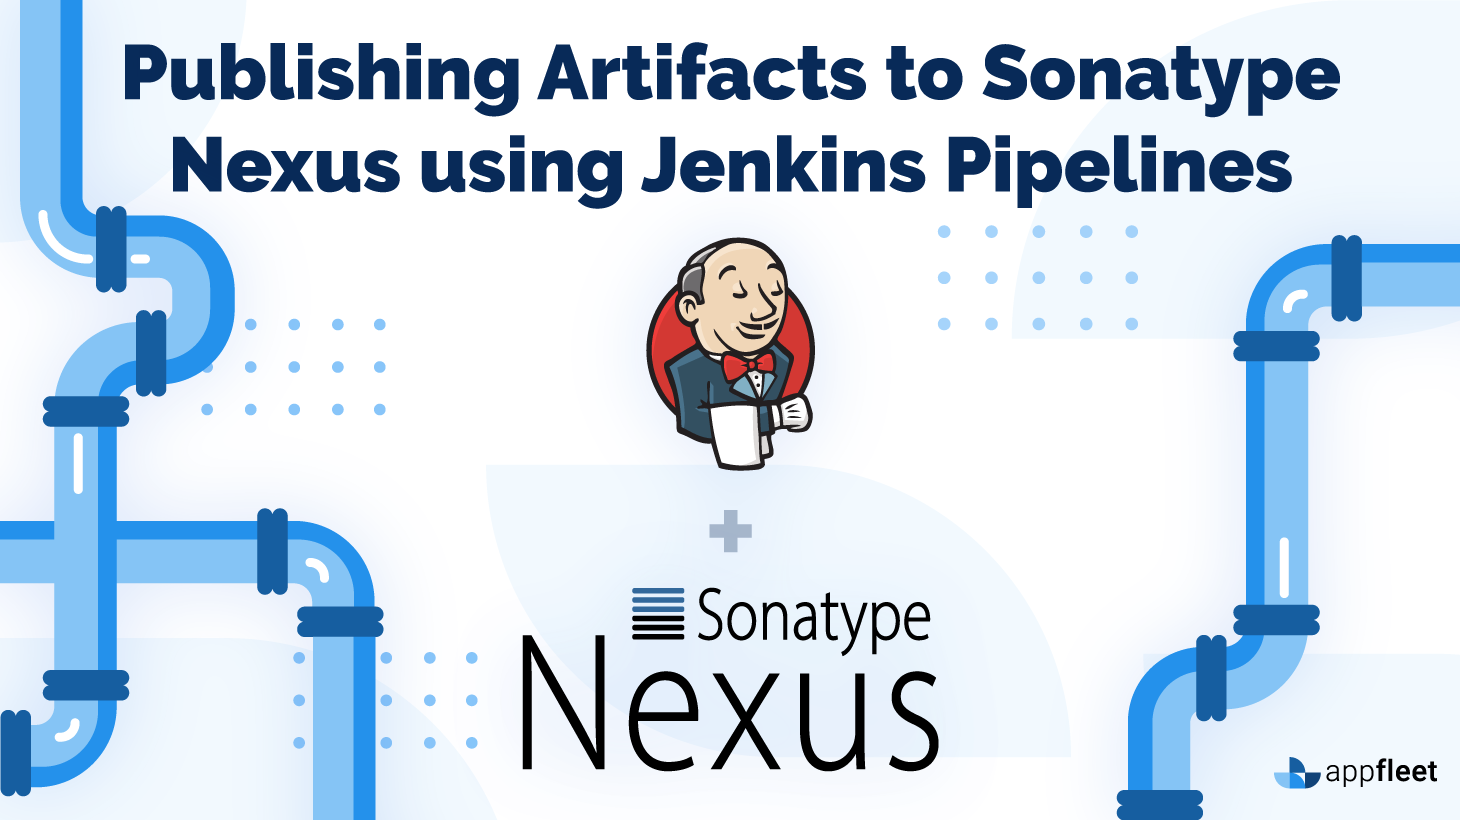 Publishing Artifacts to Sonatype Nexus using Jenkins Pipelines